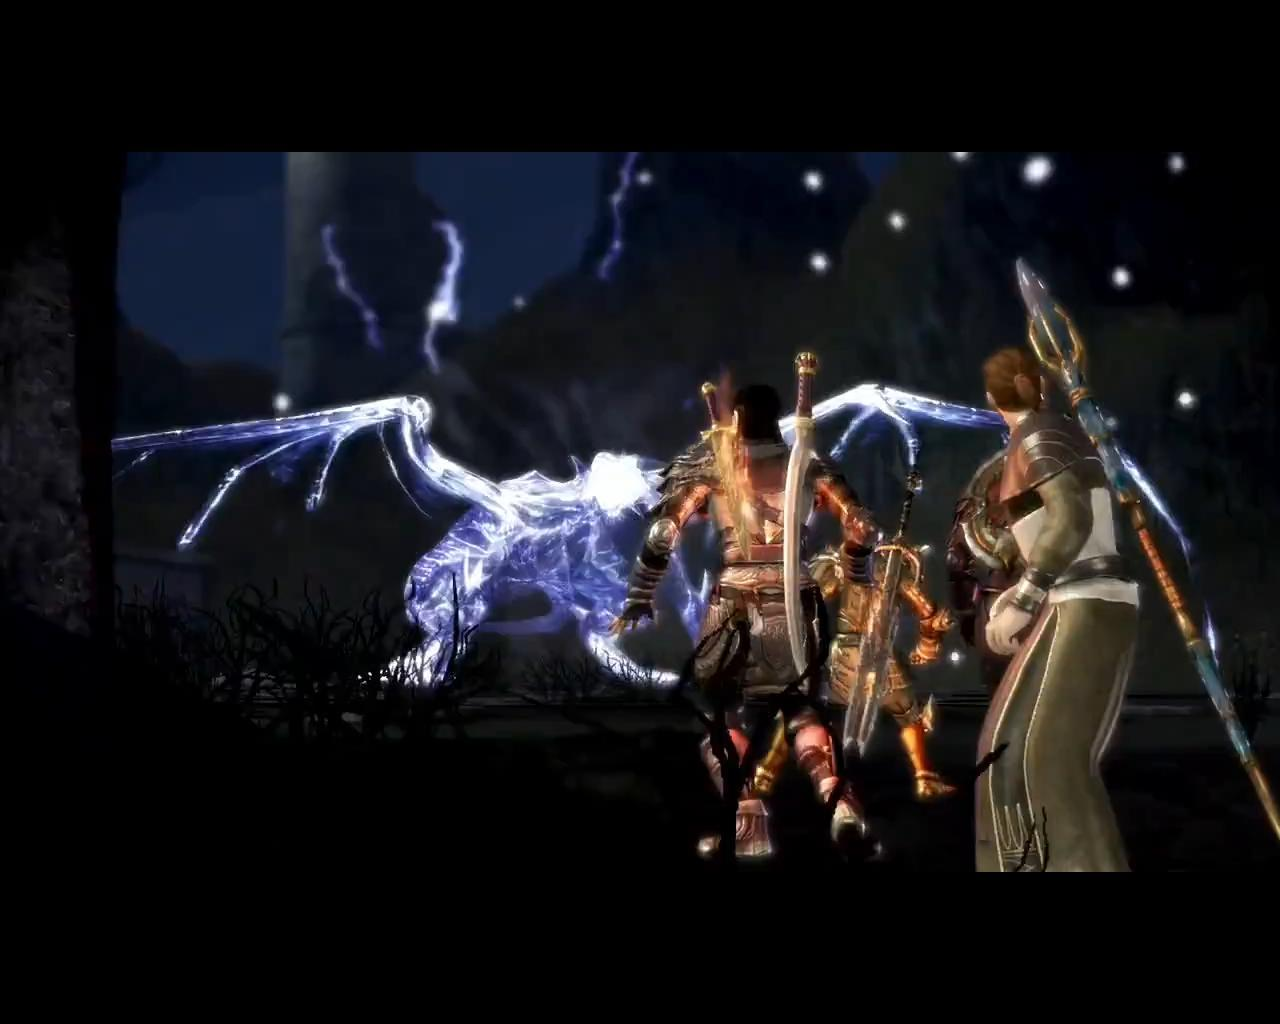 [17/03/10] Dragon Age Origins - Awakening Launch Trailer